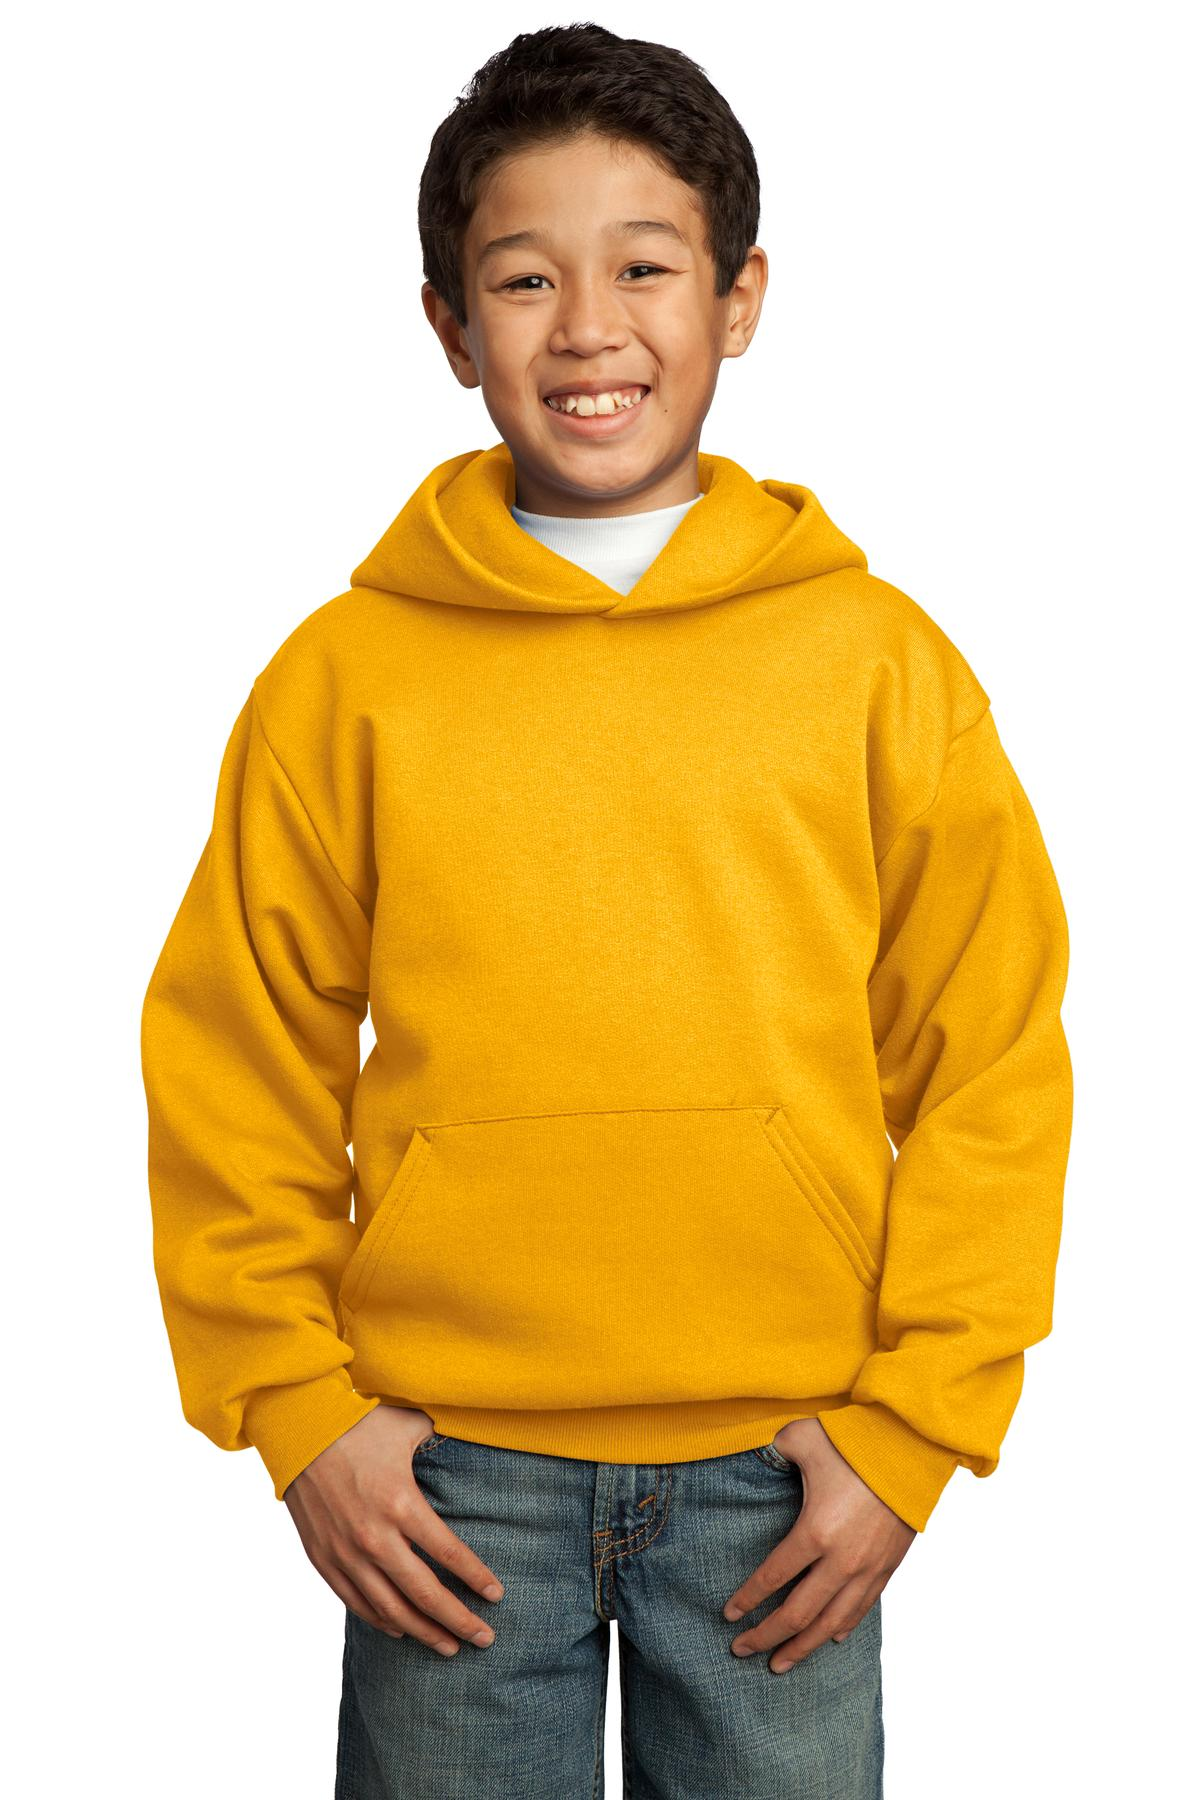 Port & Company ®  - Youth Core Fleece Pullover Hooded Sweatshirt.  PC90YH - Gold